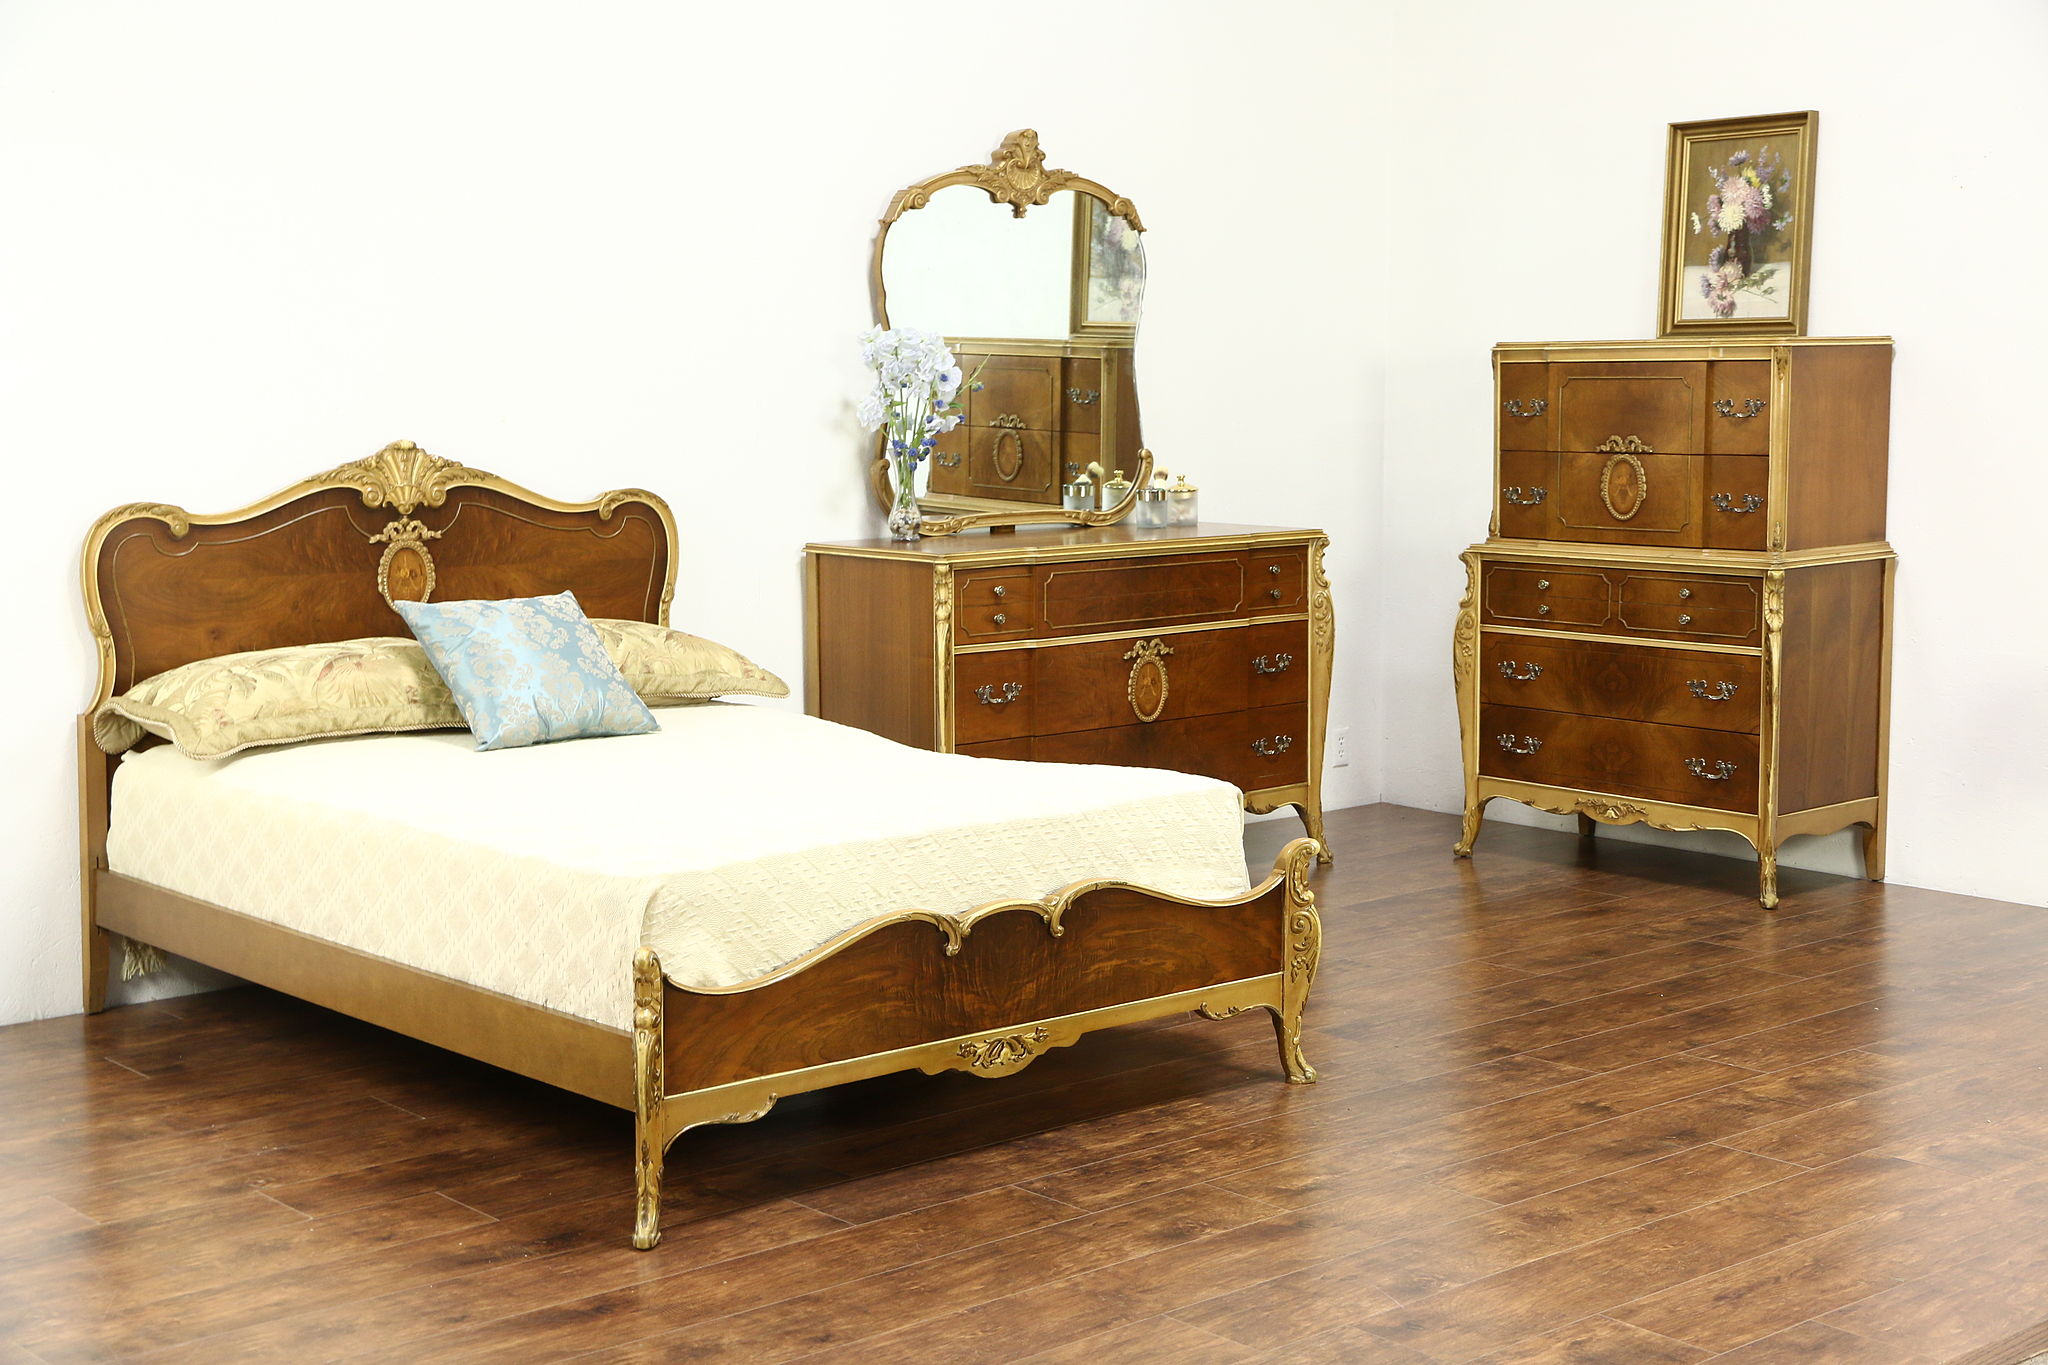 french style 1940s vintage 3 pc bedroom set full size bed signed joerns - Full Bedroom Sets Style